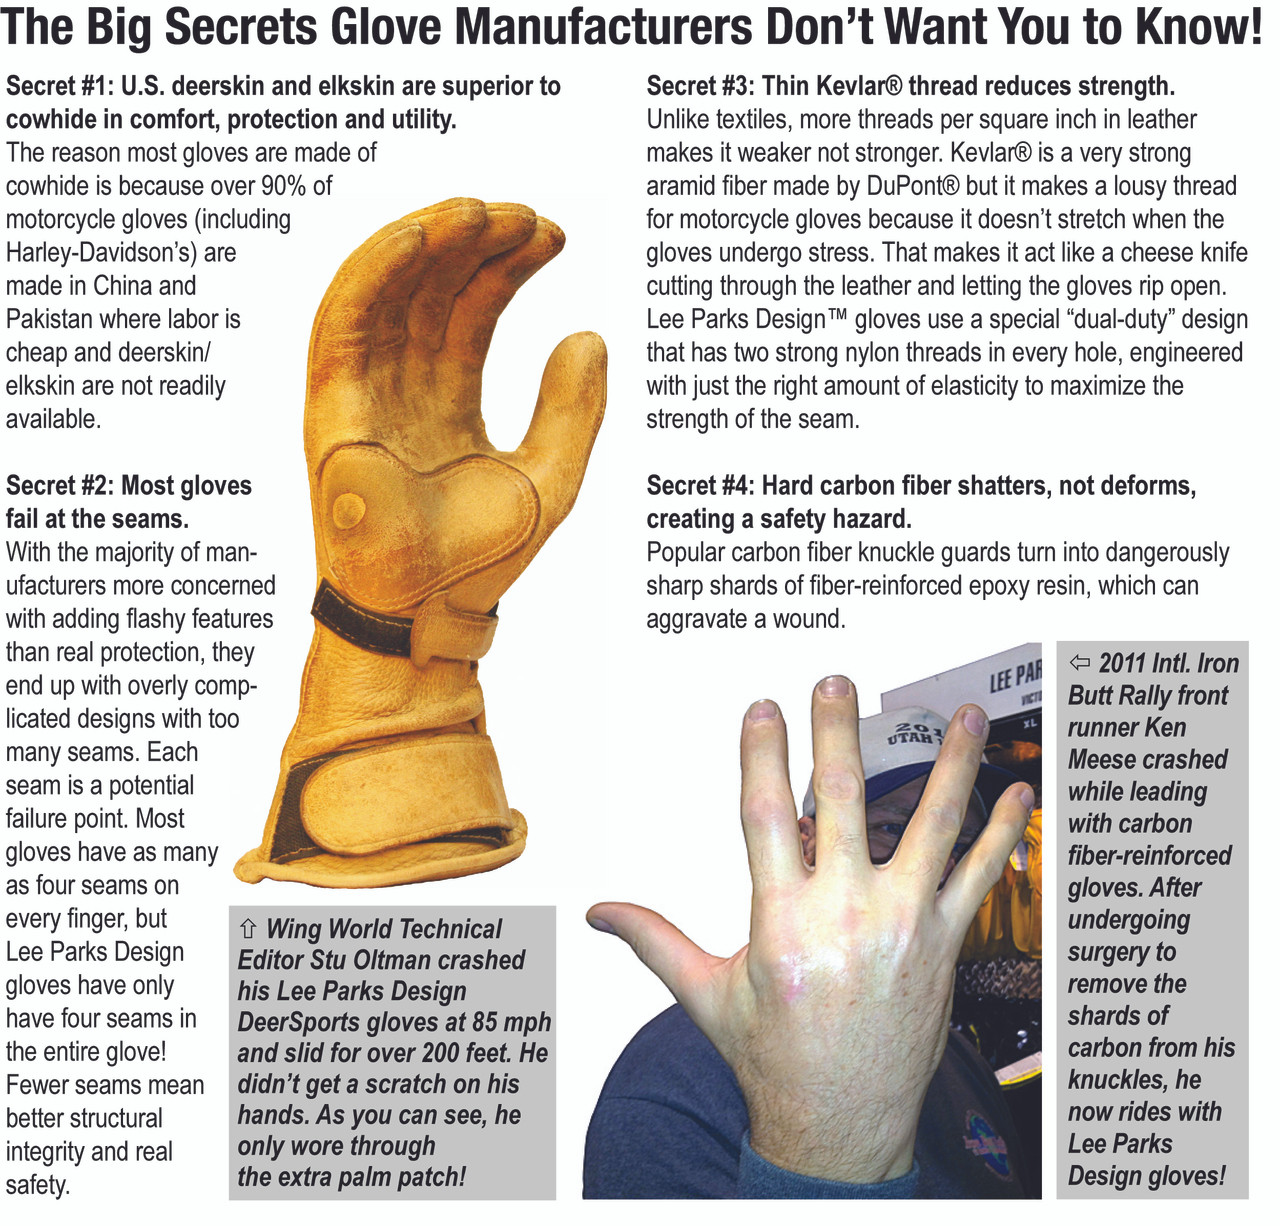 Motorcycle gloves made in pakistan - Share